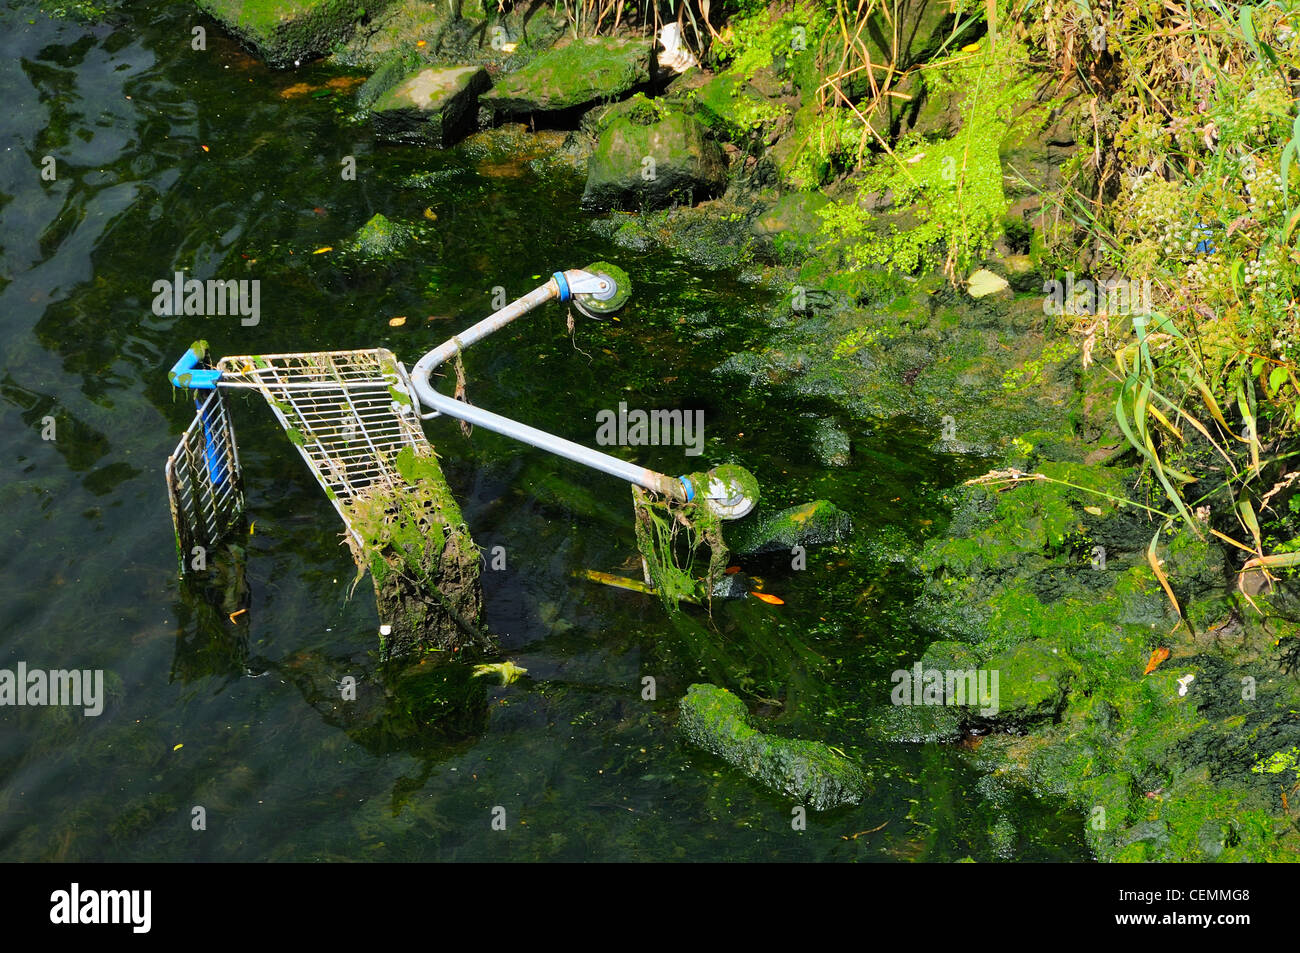 A old shopping card laying in the Cork River at the Wandesford Quay, Cork, Cork County, Ireland. - Stock Image